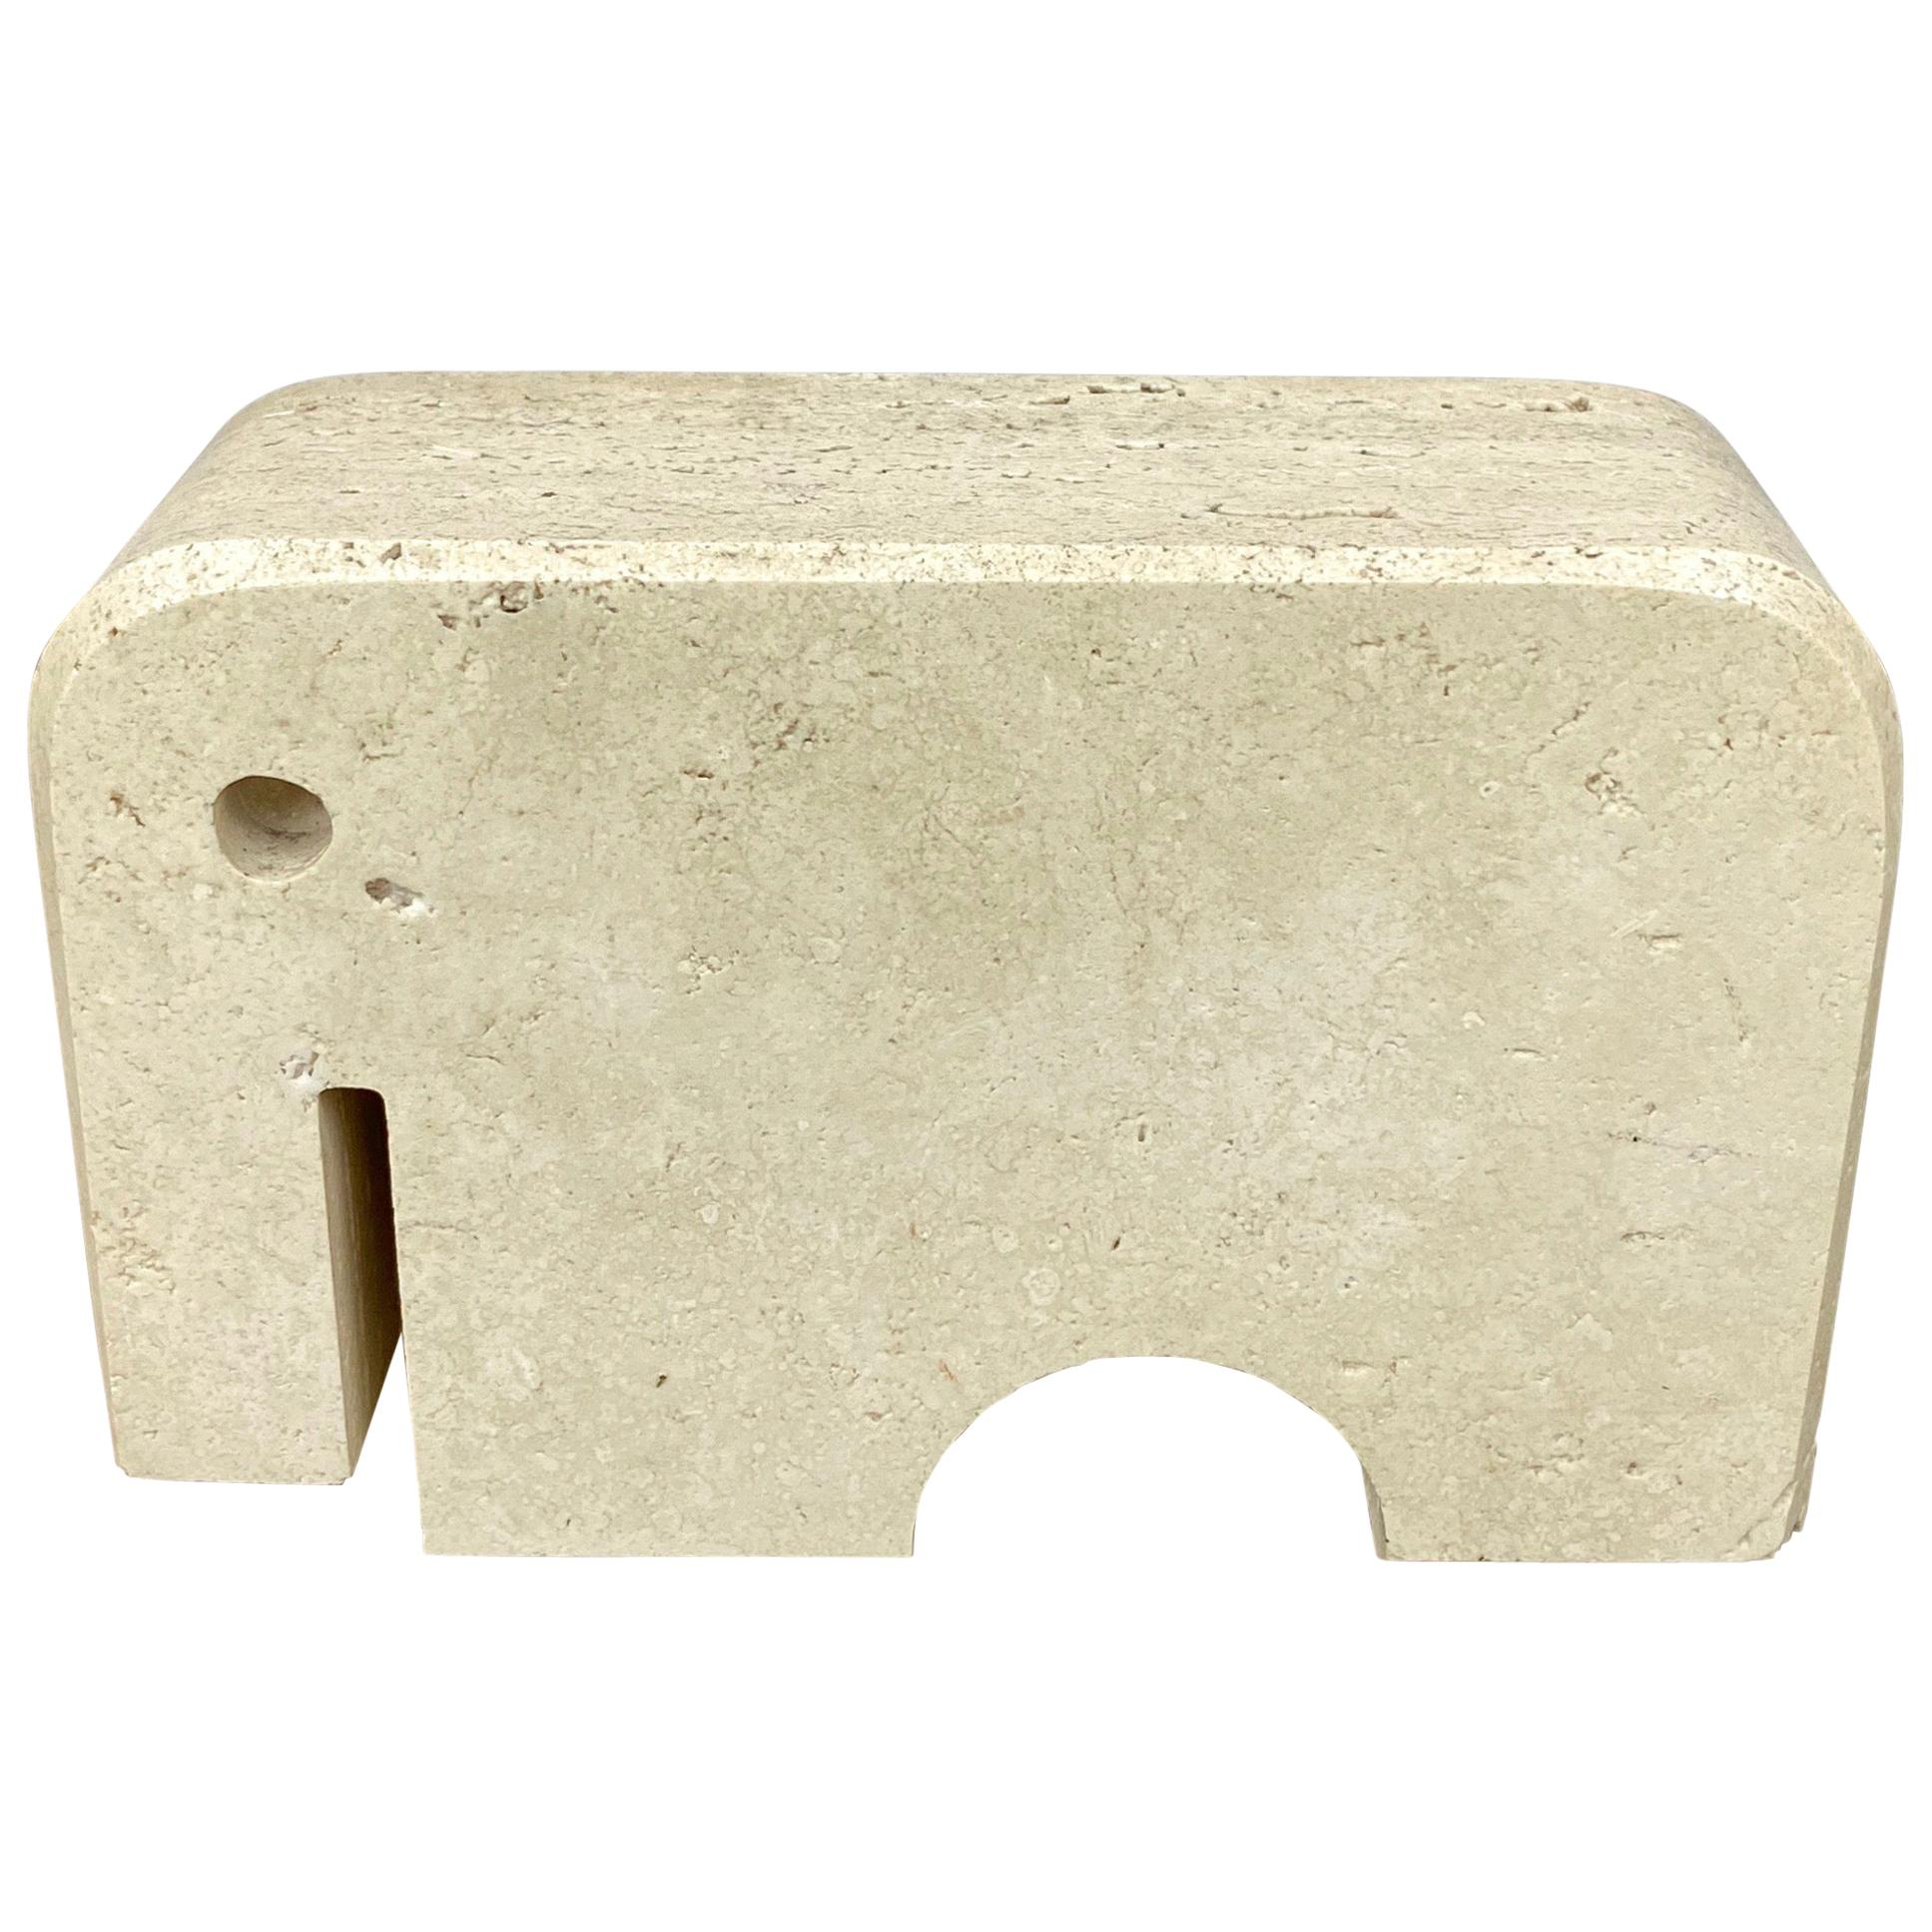 Fratelli Mannelli Travertine Elephant Animal Sculpture, Italy, 1970s